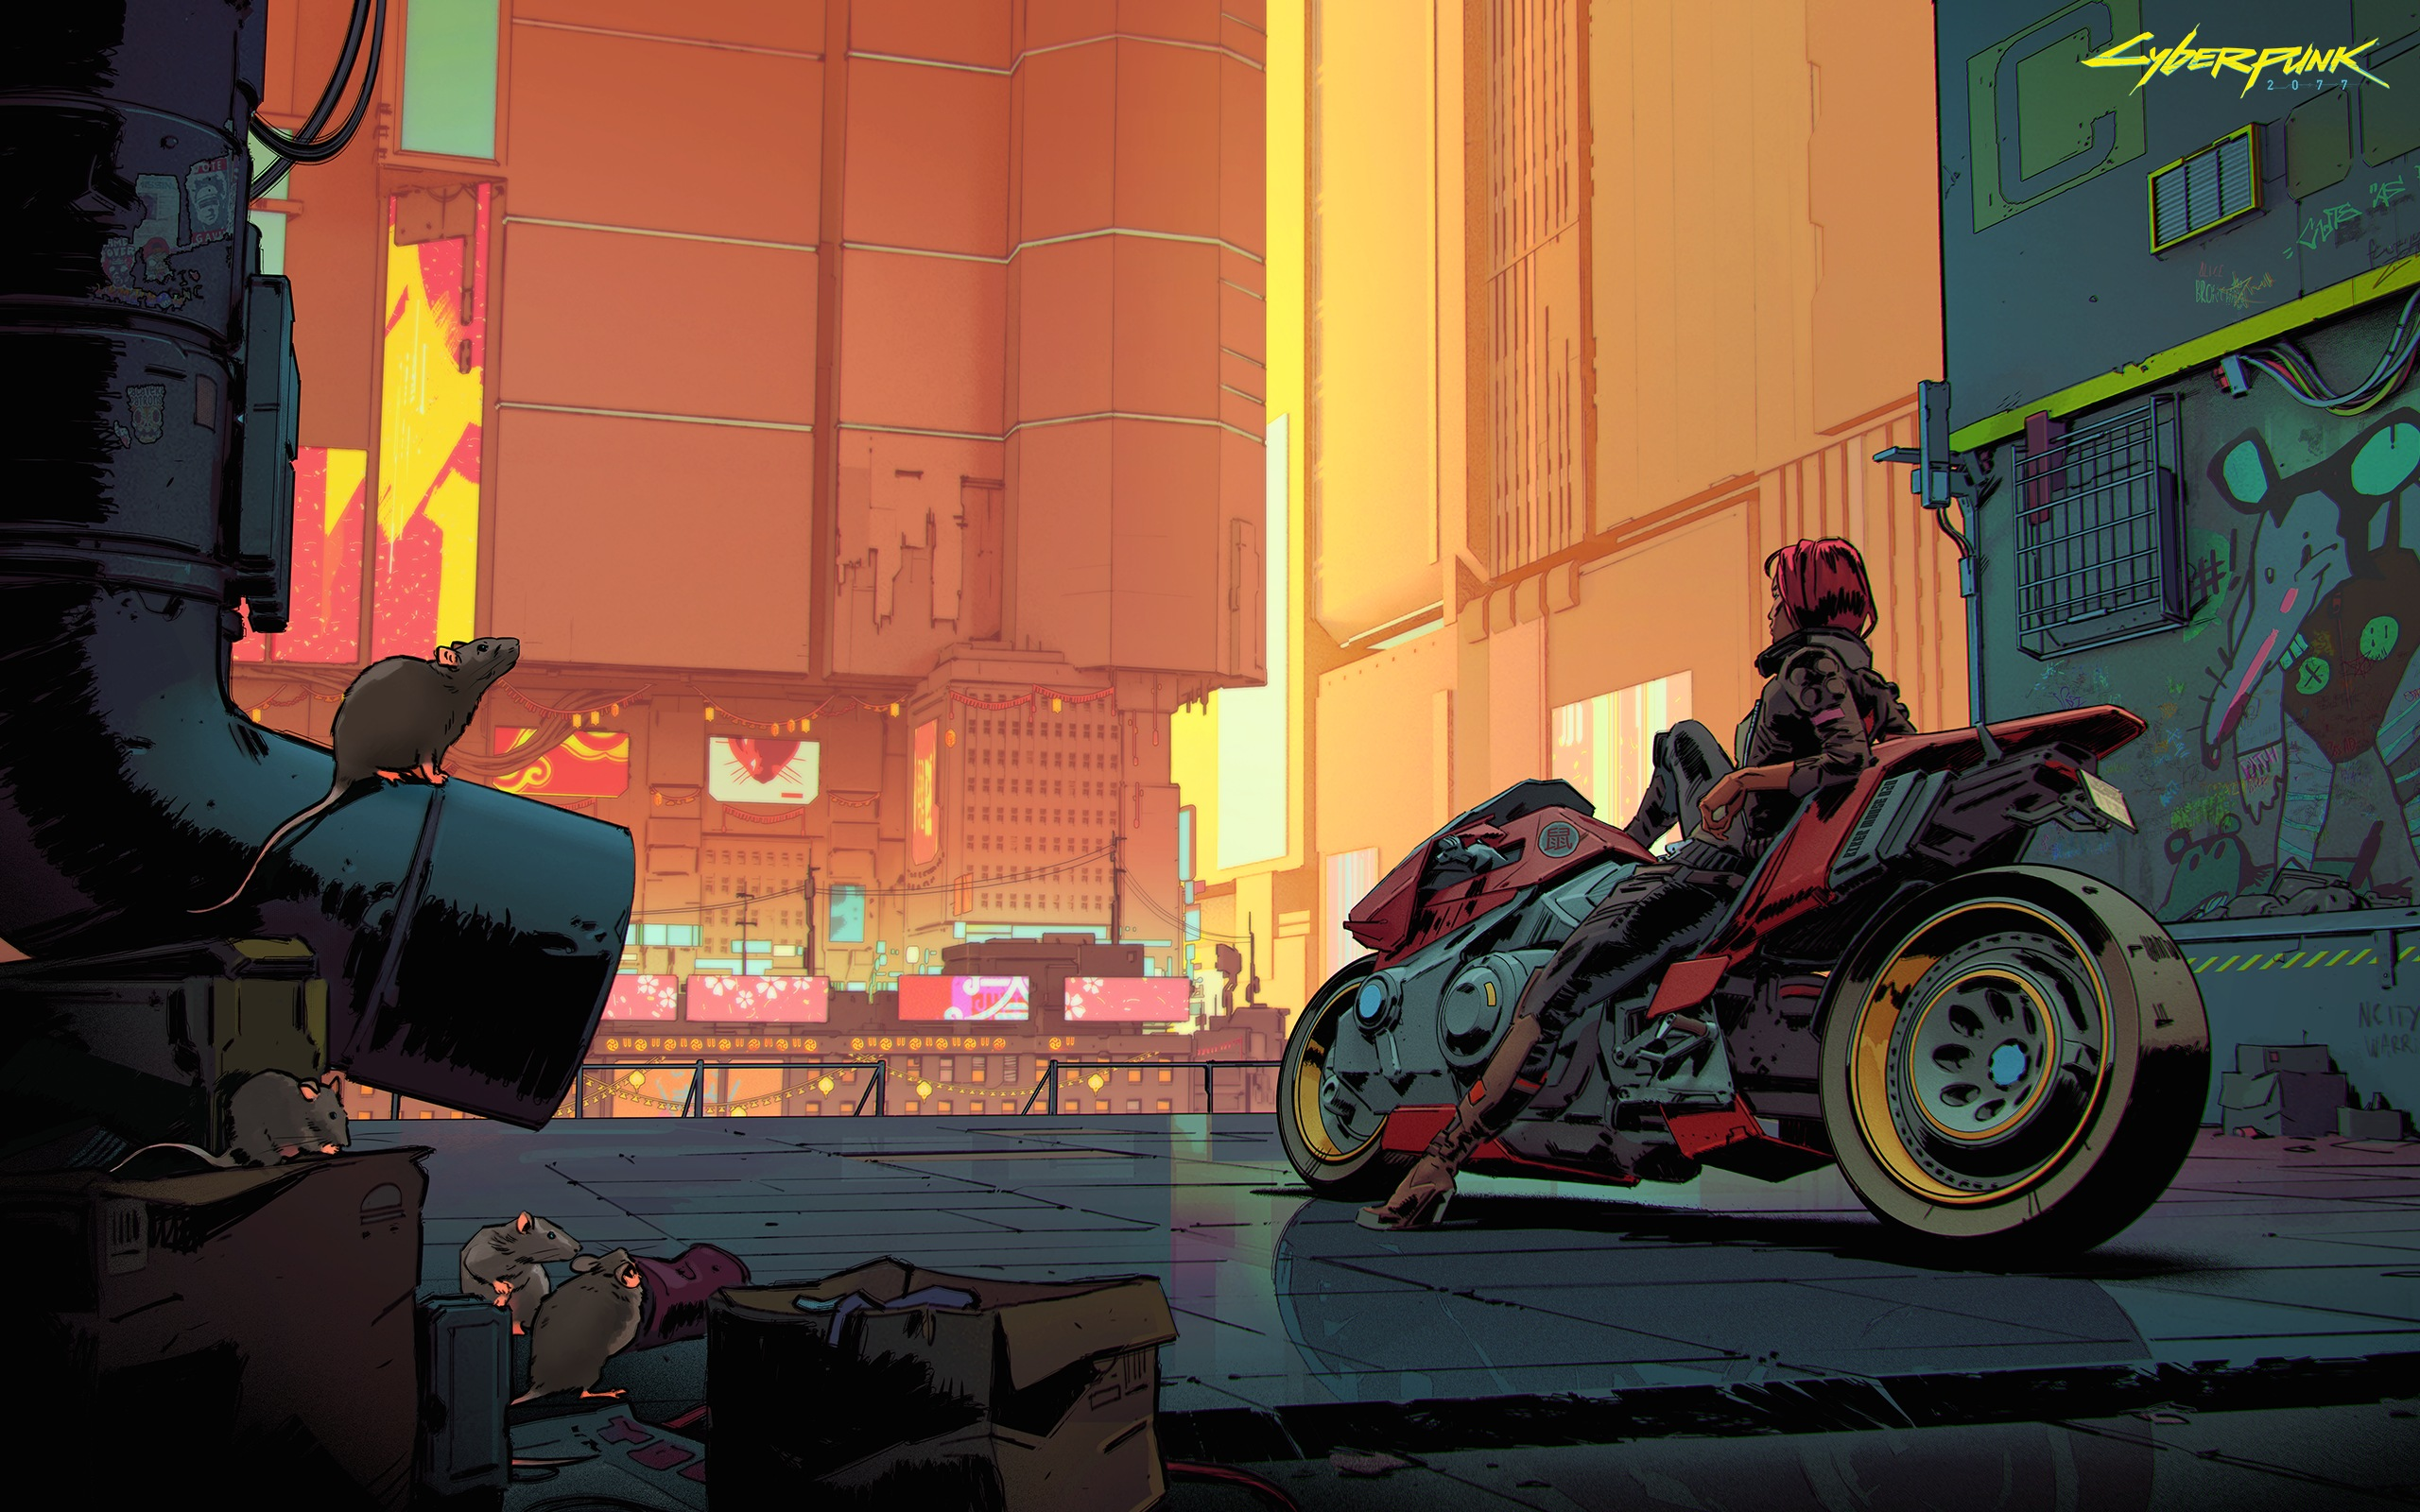 Concept art shows a woman reclining on a bike in Night City. The smog-filled sky is orange, and the shadows look red.